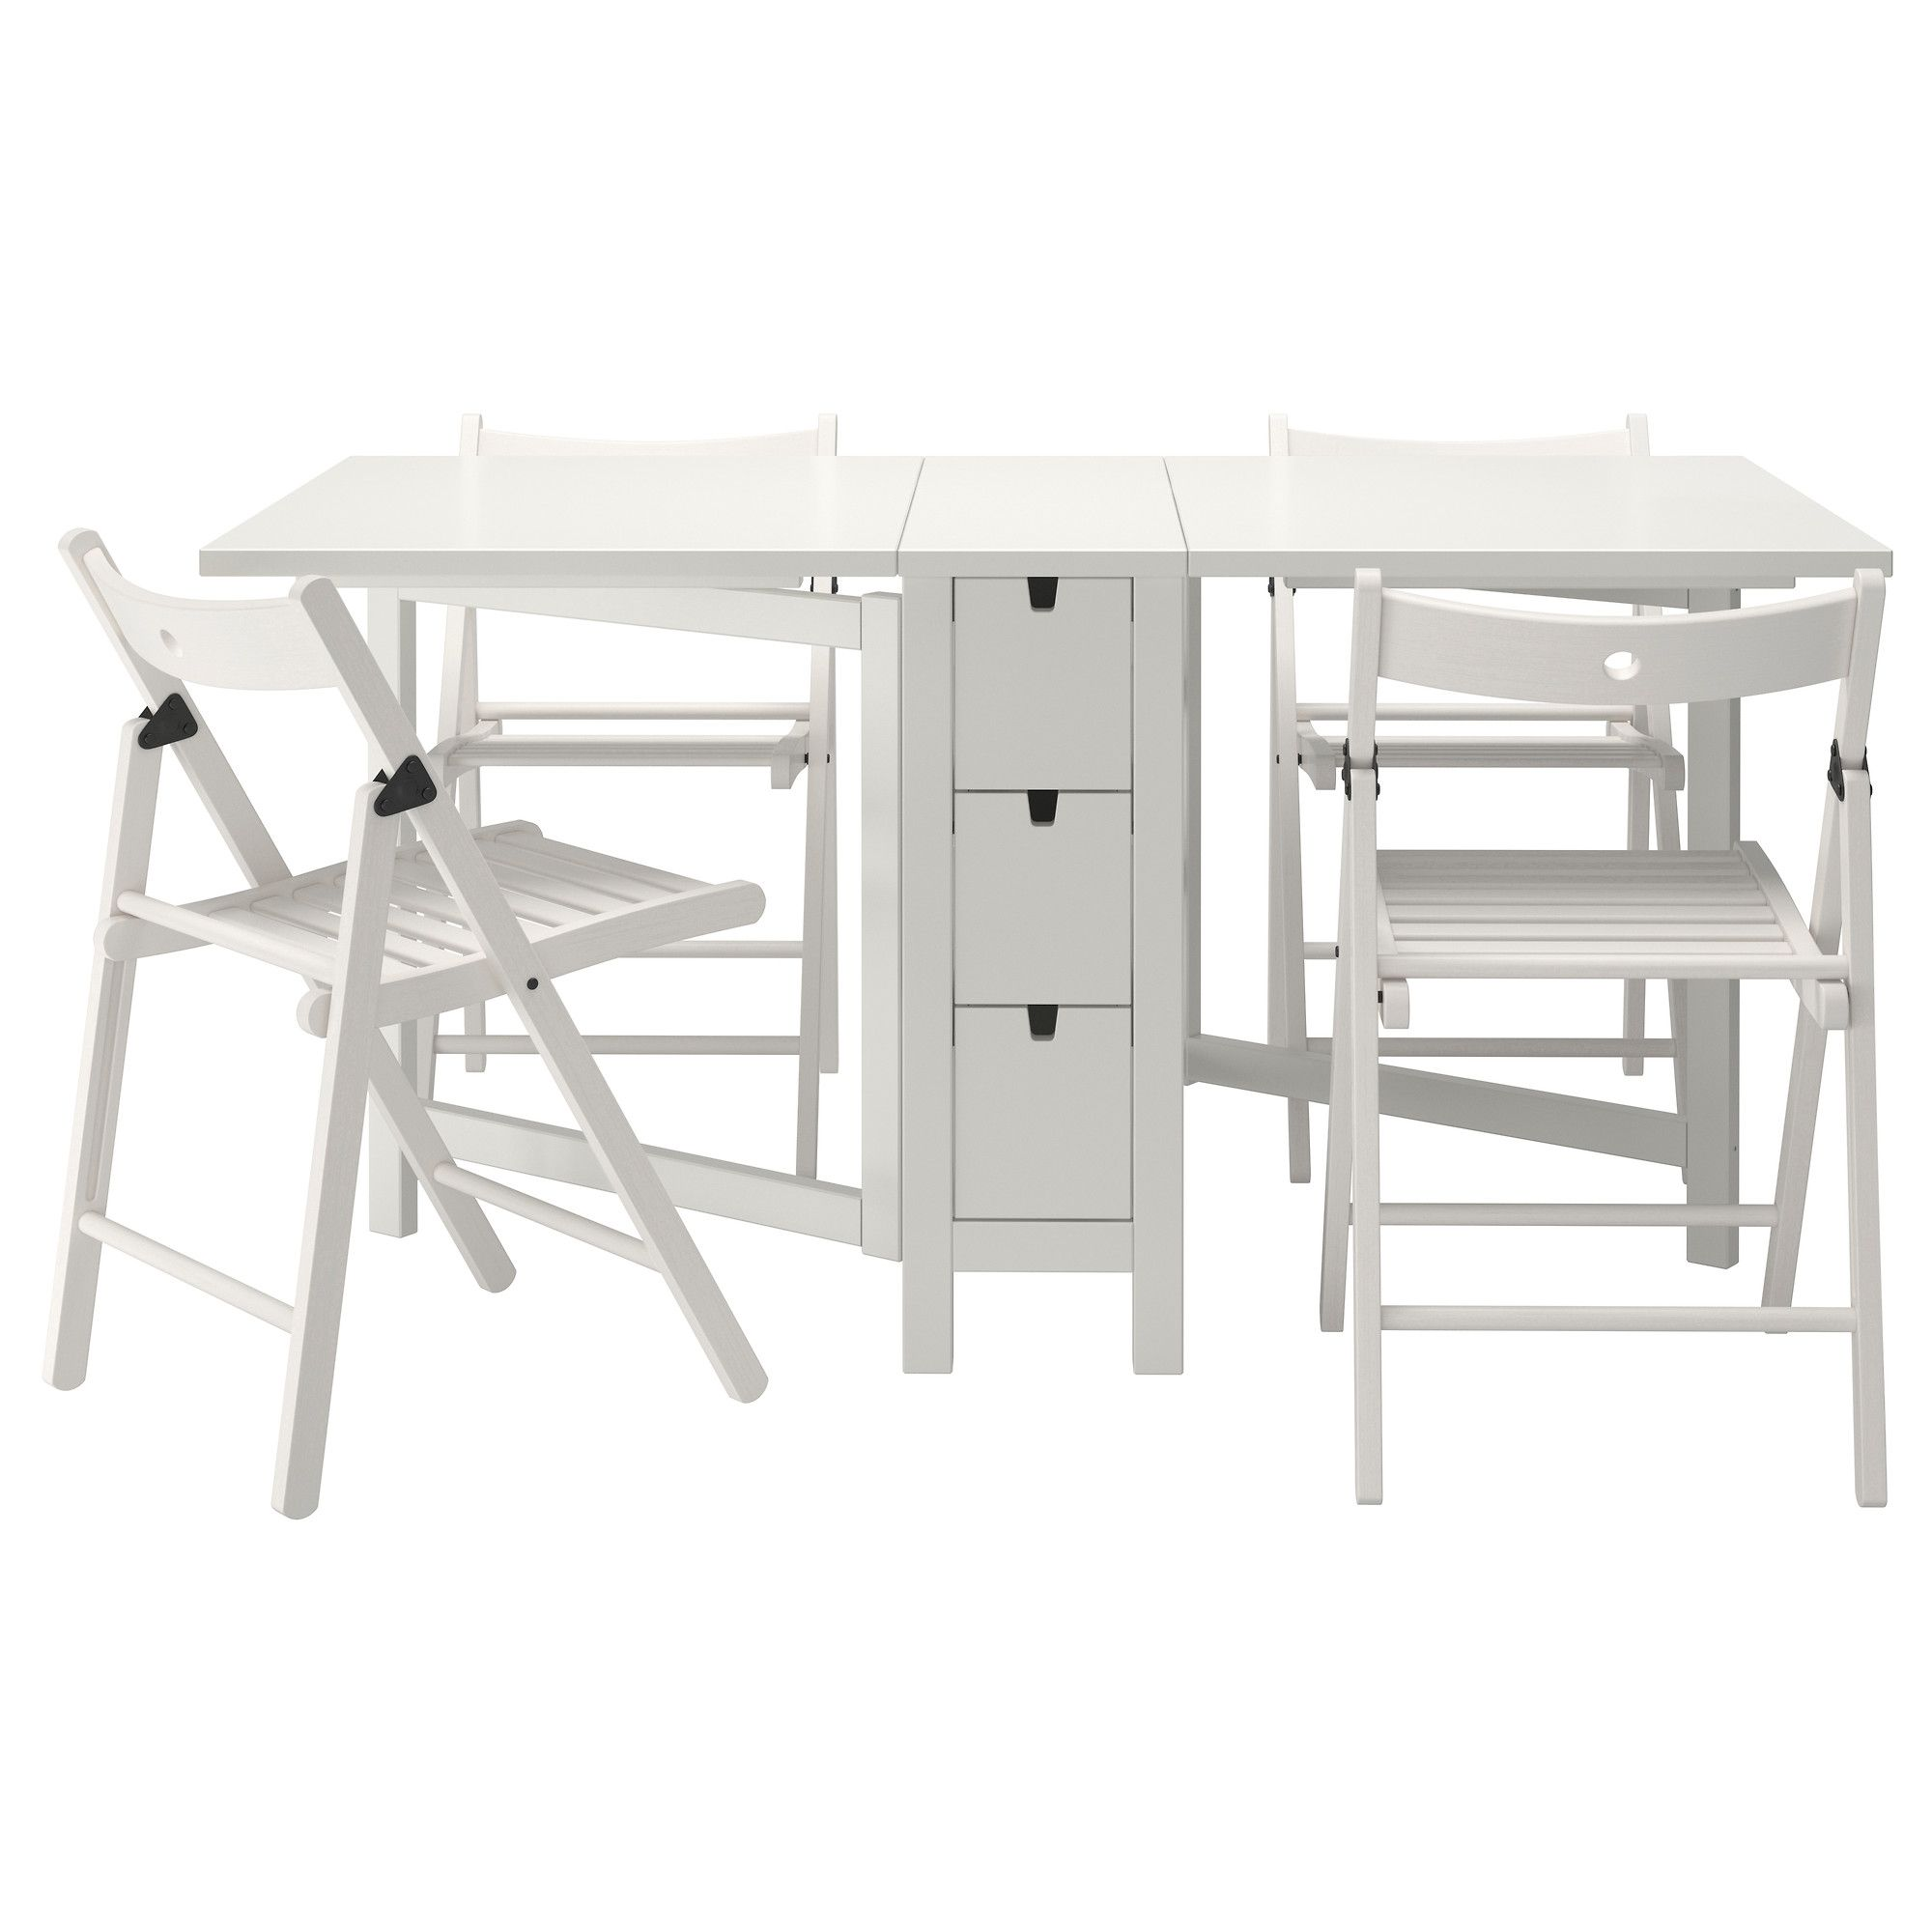 Fresh Home Furnishing Ideas And Affordable Furniture Ikea Folding Table Dining Table Chairs Kitchen Table Settings